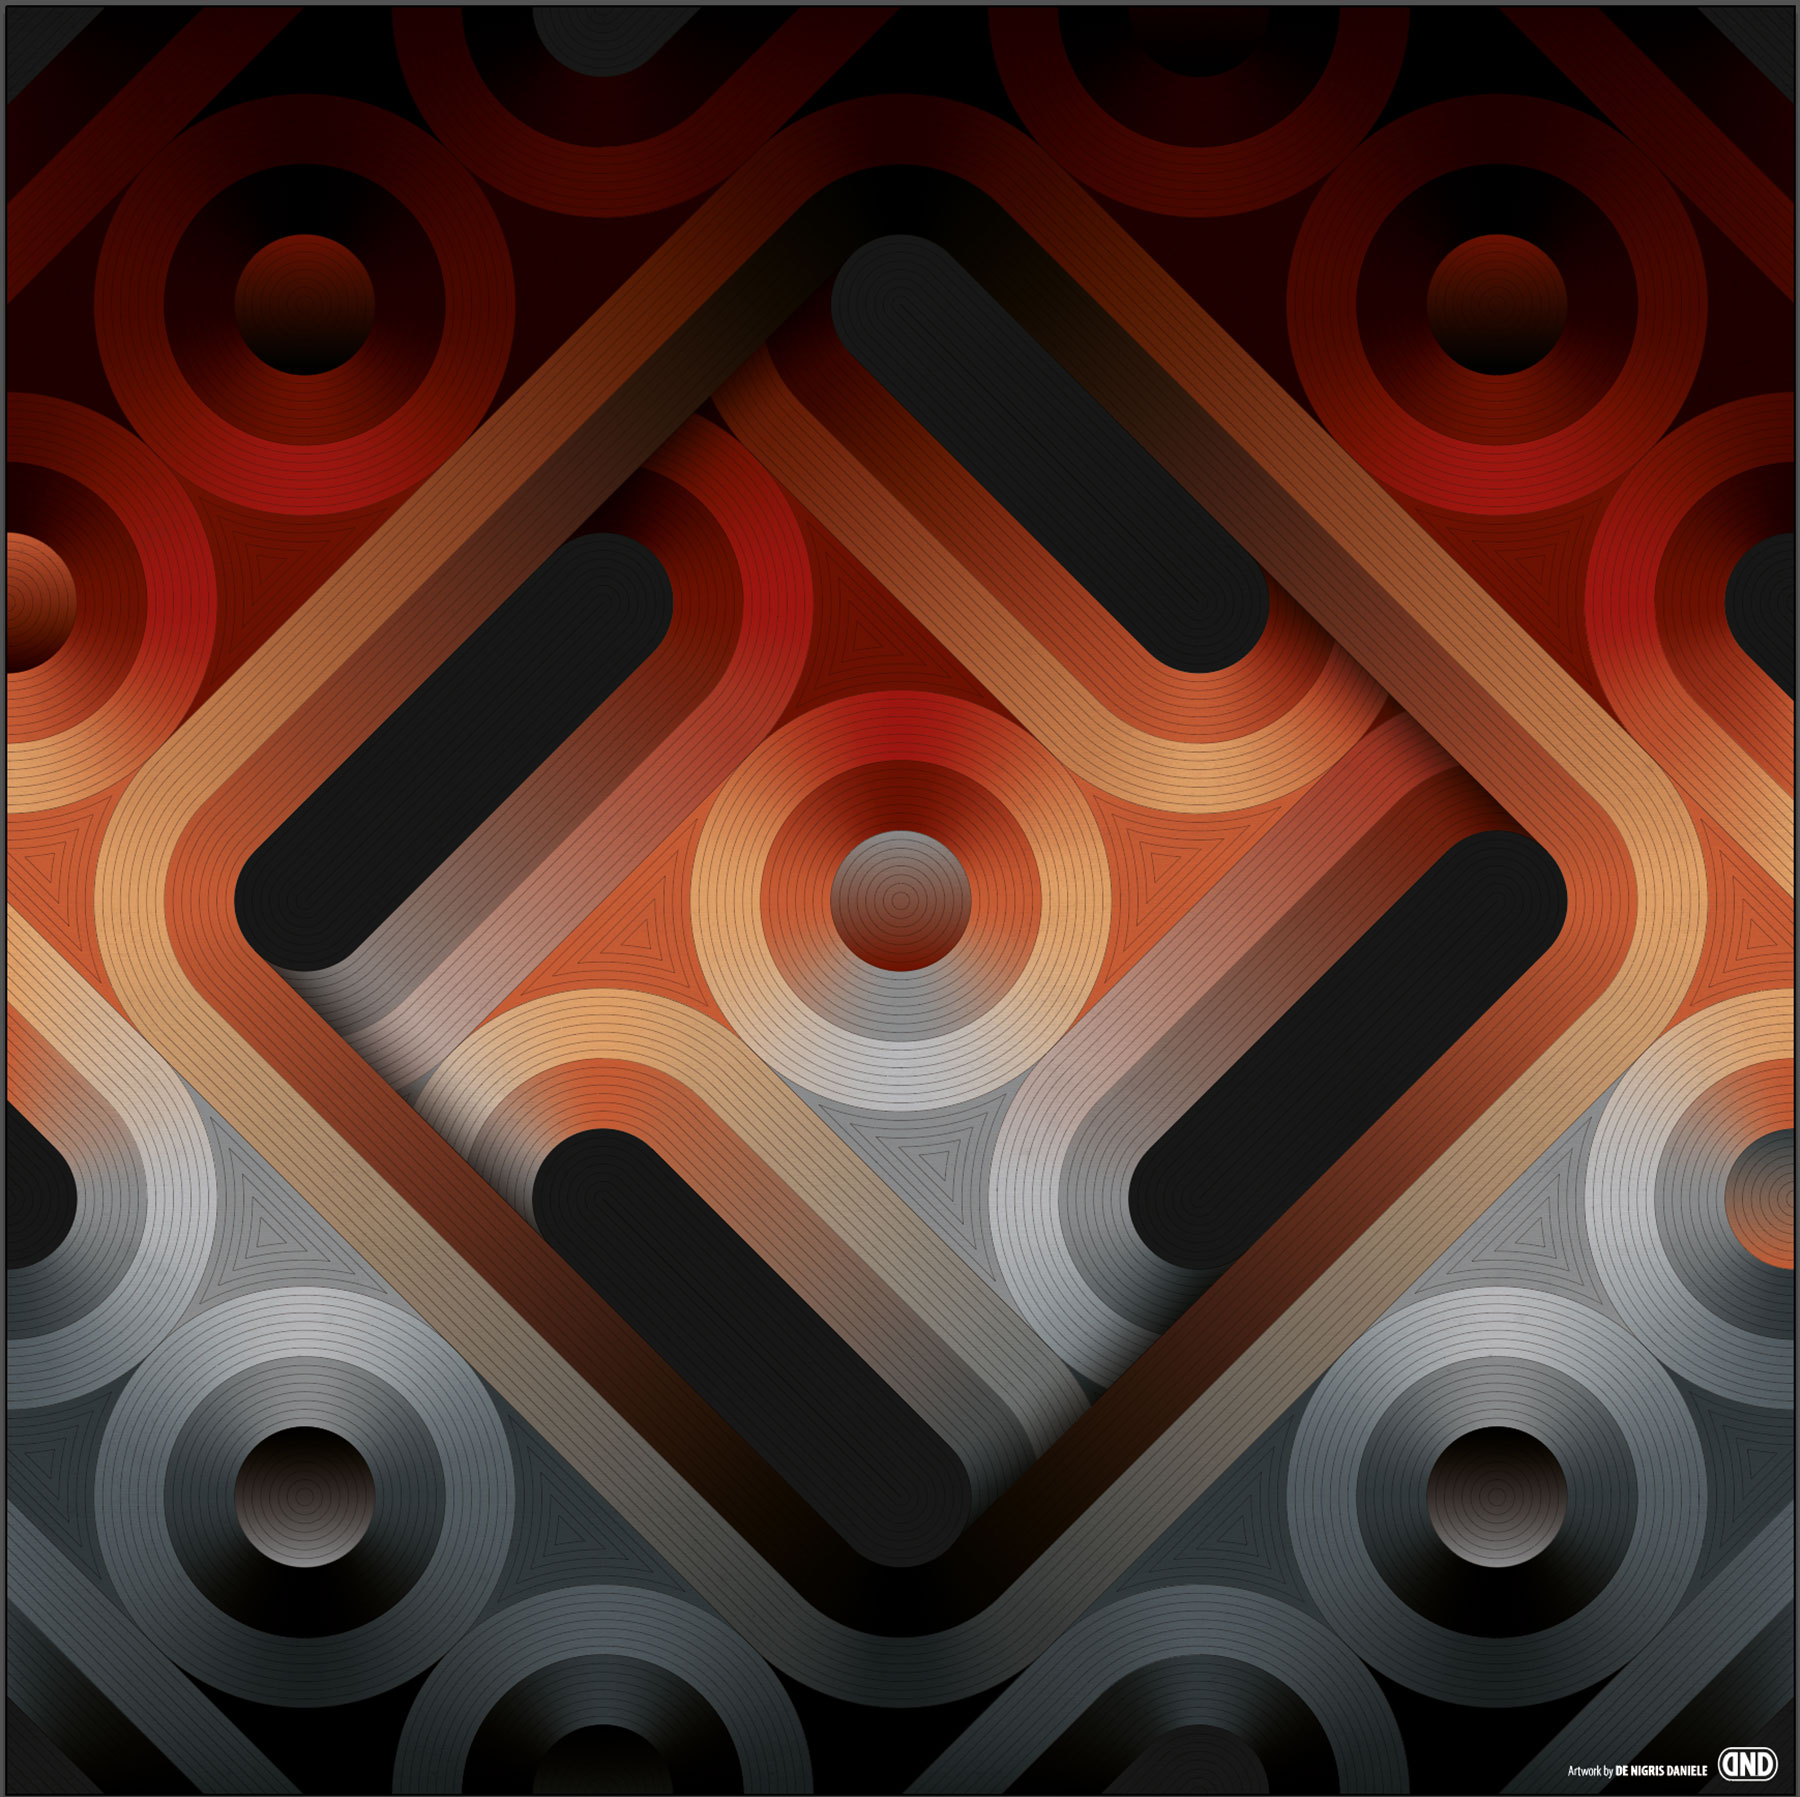 create-complex-design-tile-patterns_16